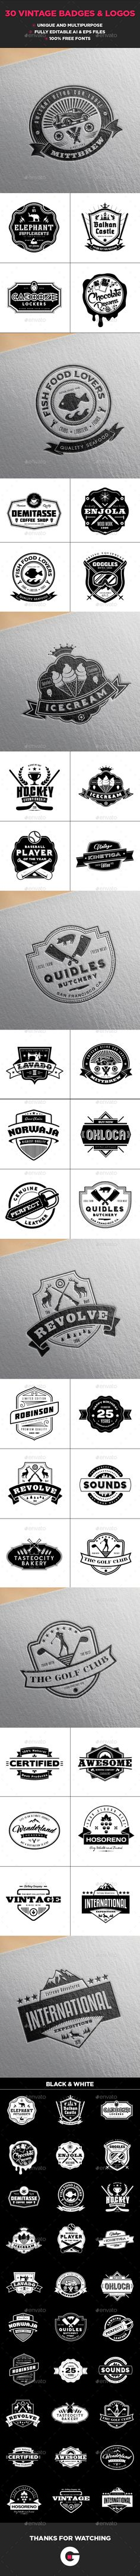 30 Vintage Logo Collection Vector EPS, AI Illustrator